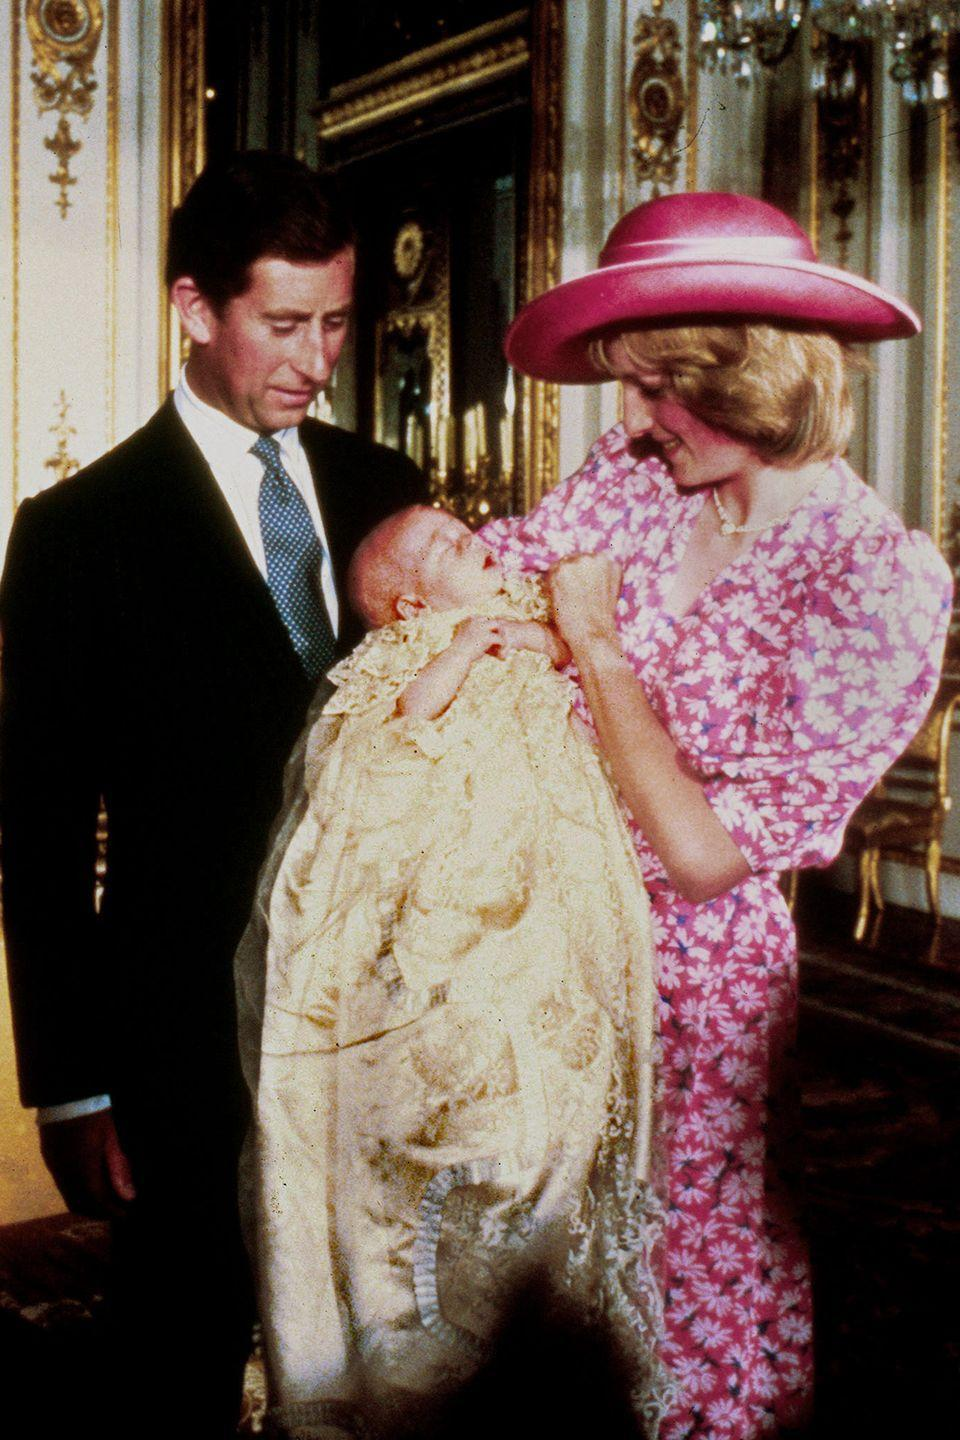 <p>Celebrating the christening of Prince William at Buckingham Palace. </p>